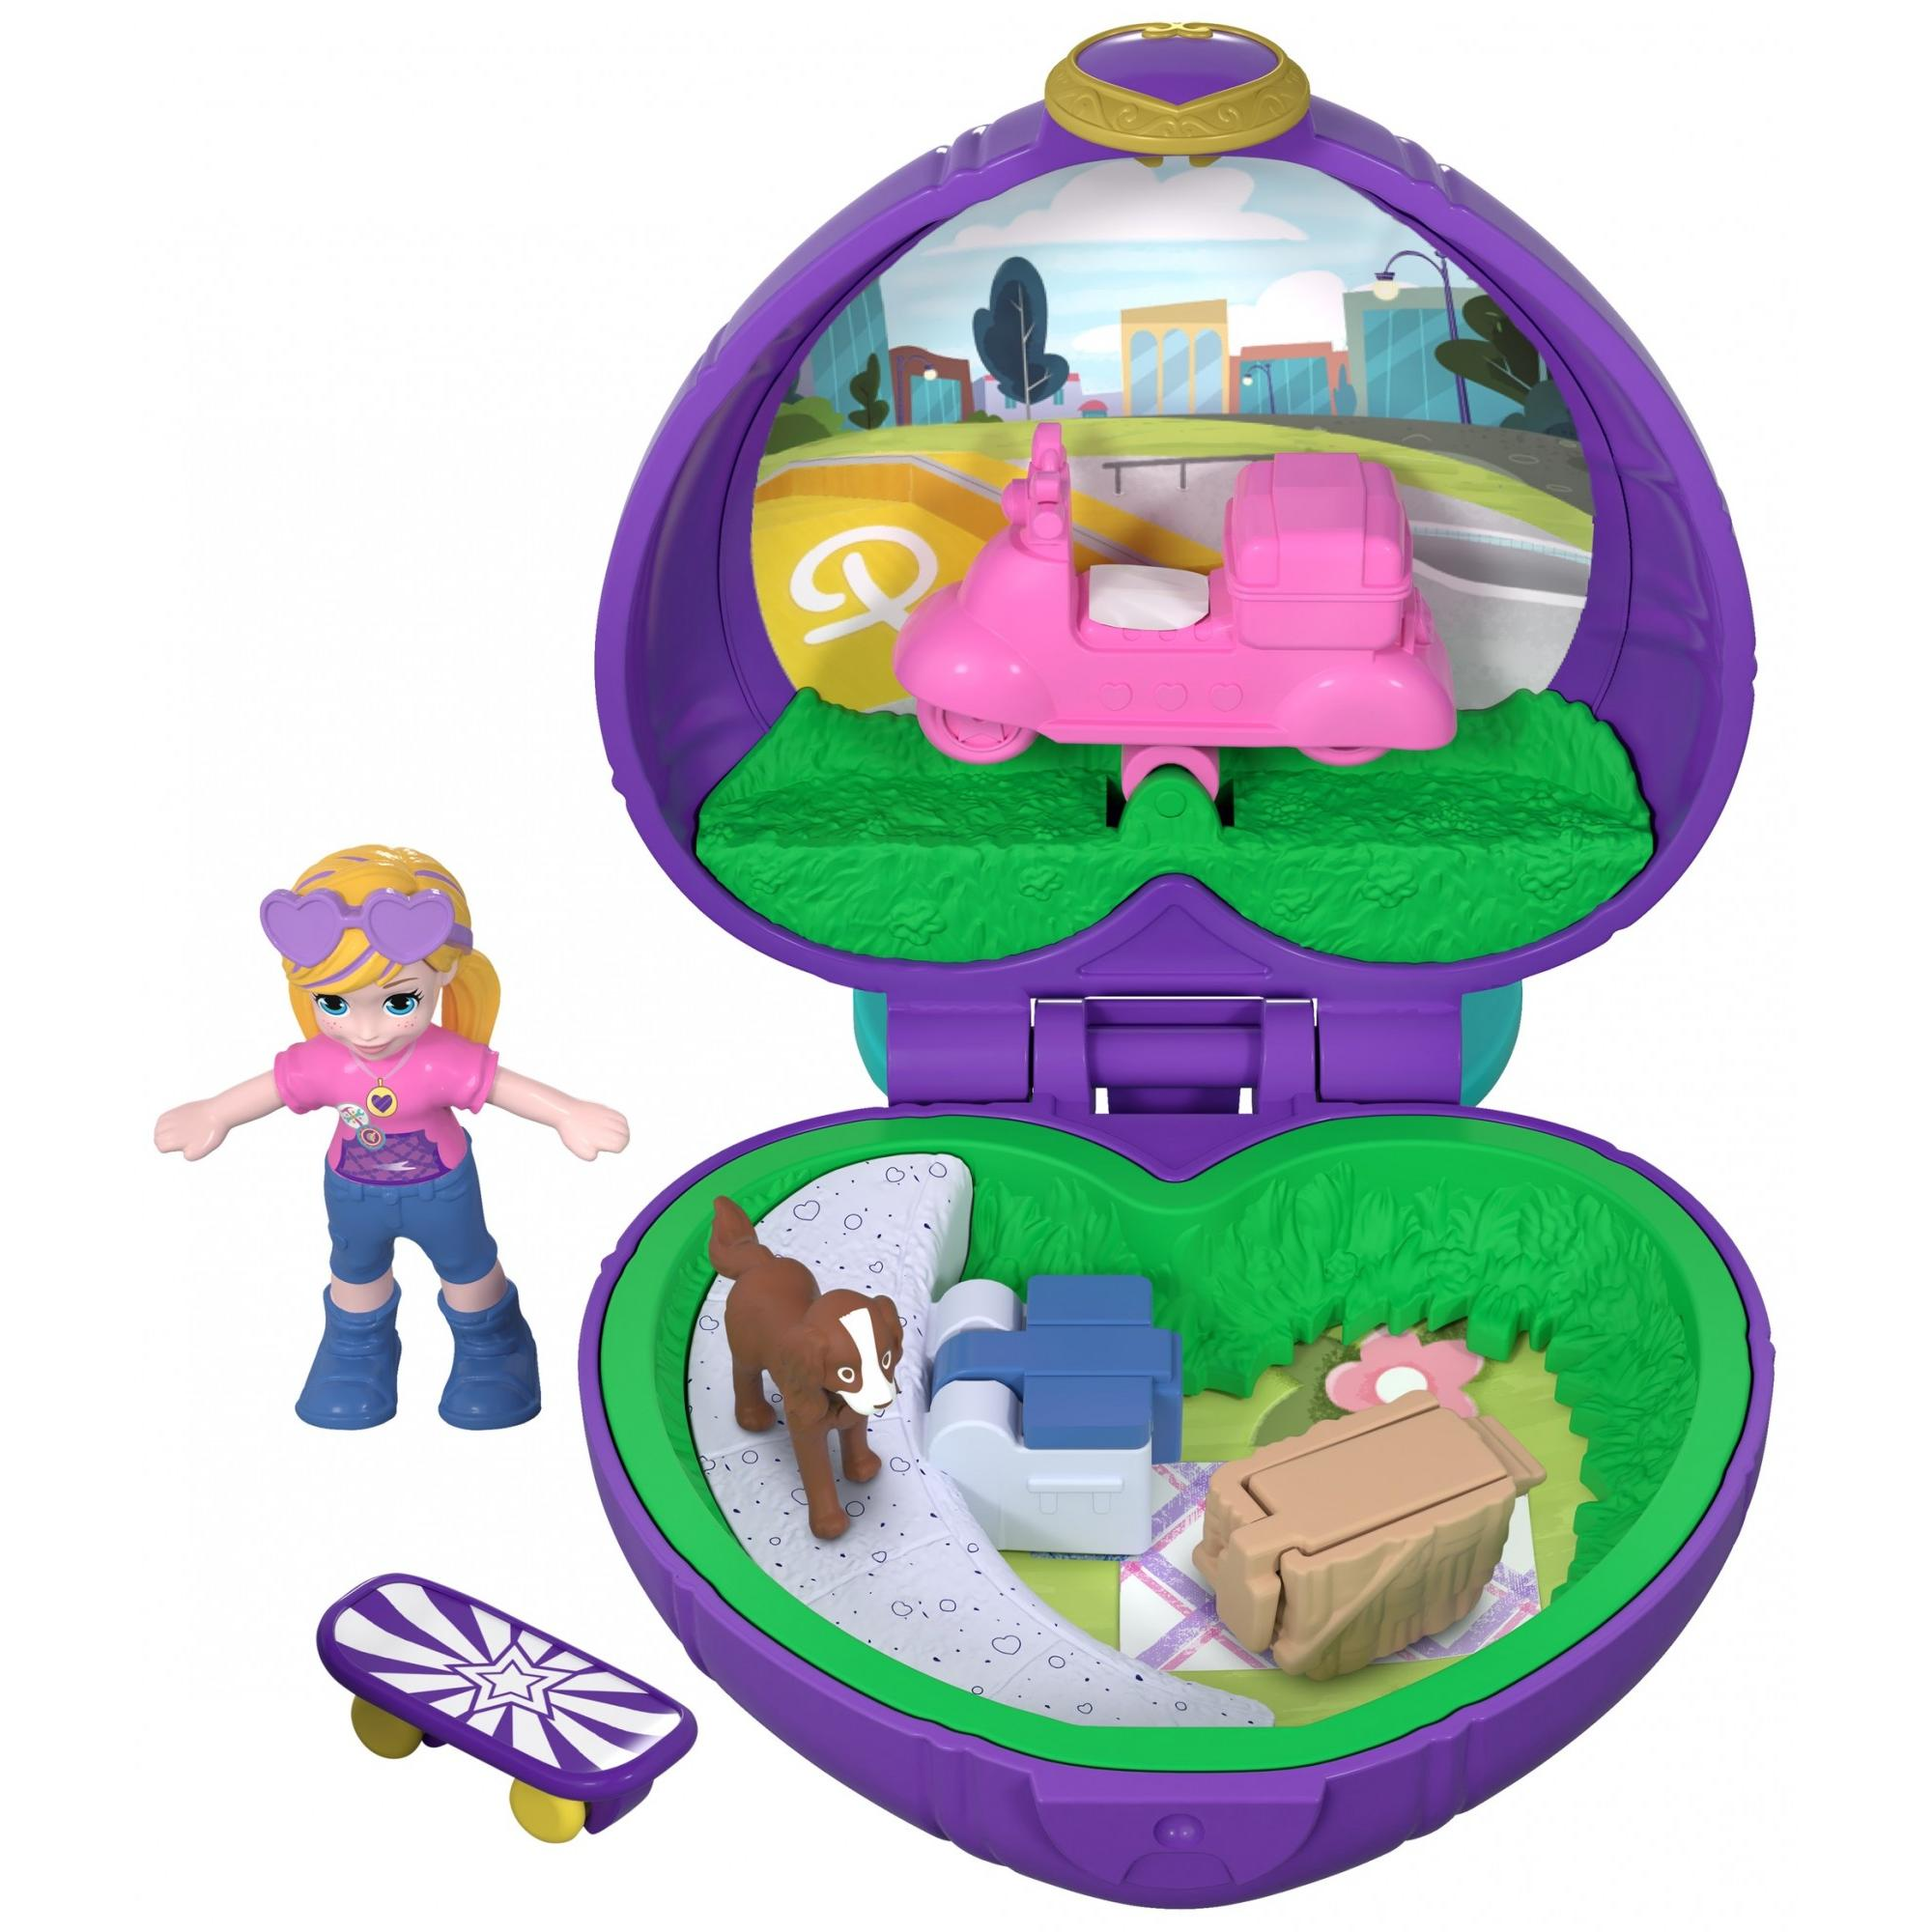 Polly Pocket Tiny Pocket Places Picnic Portable Compact with Micro Skateboarding Doll